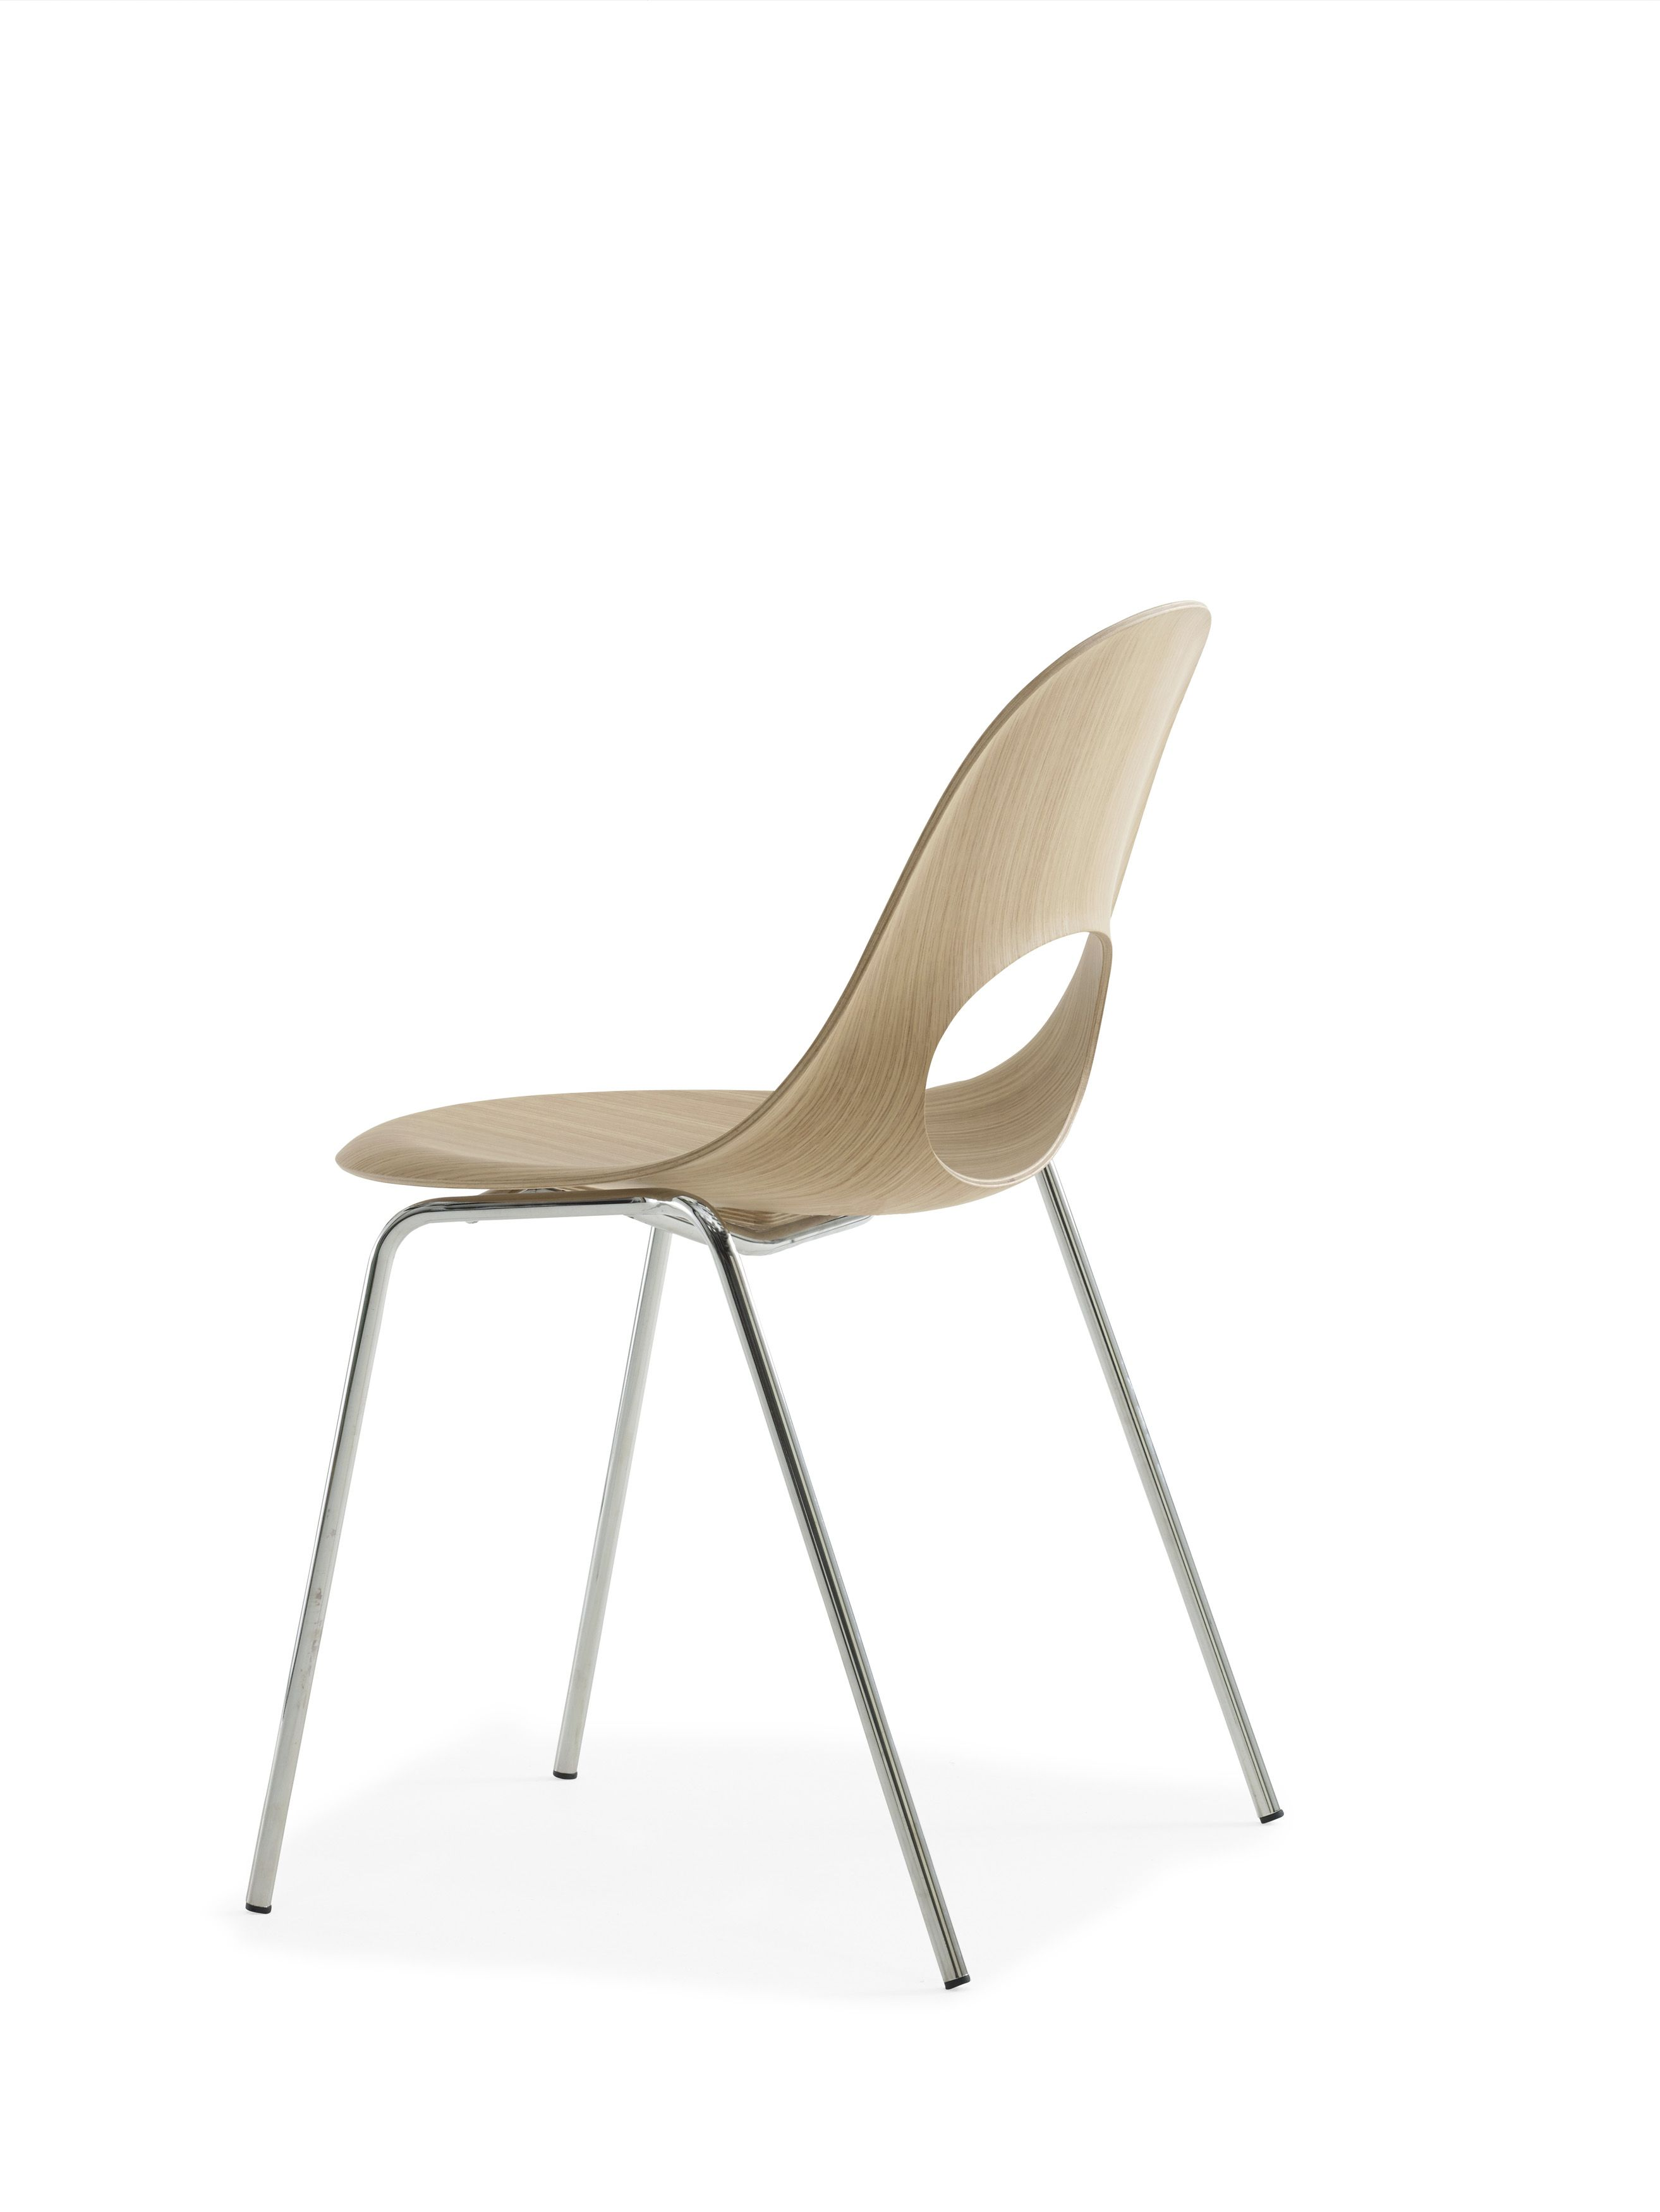 This SayO Basic Chair raw wood with metal legs which is also stackable. May be acquired with different types of wood veneer. Find out more at www.sayo.dk.